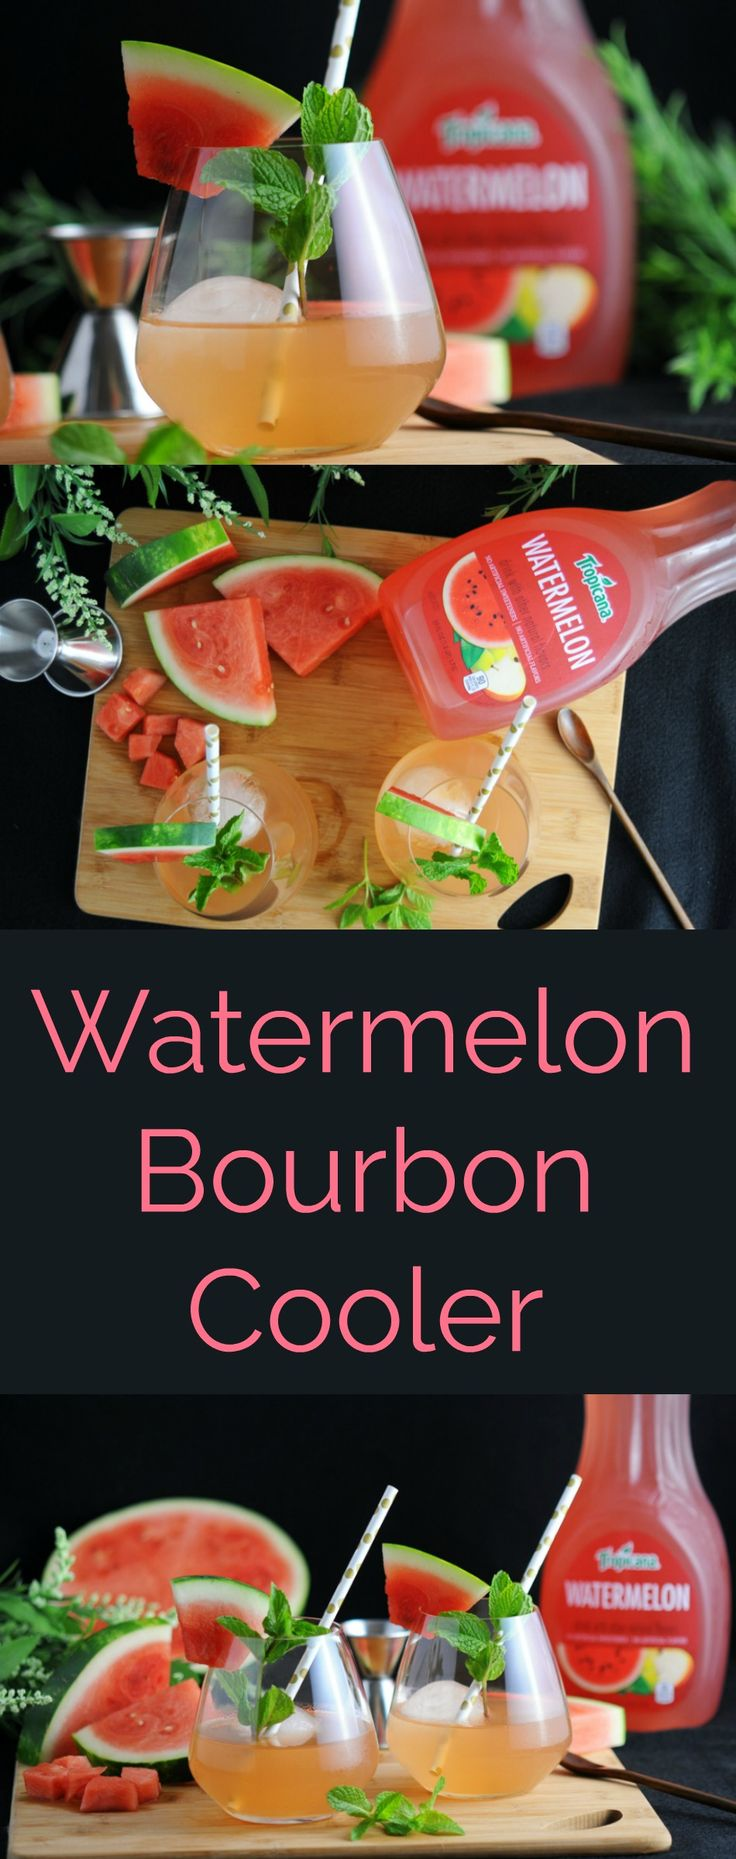 Watermelon Bourbon Coolers - #mixedwithtrop #ad cocktail, craft cocktails, craft cocktail recipes, craft cocktails bartender, craft cocktails & mixology, watermelon, bourbon, whiskey drinks, bourbon drinks, bourbon cocktail, mint recipes, mint simple syrup, paper straws, tropicana, watermelon juice, lime juice,